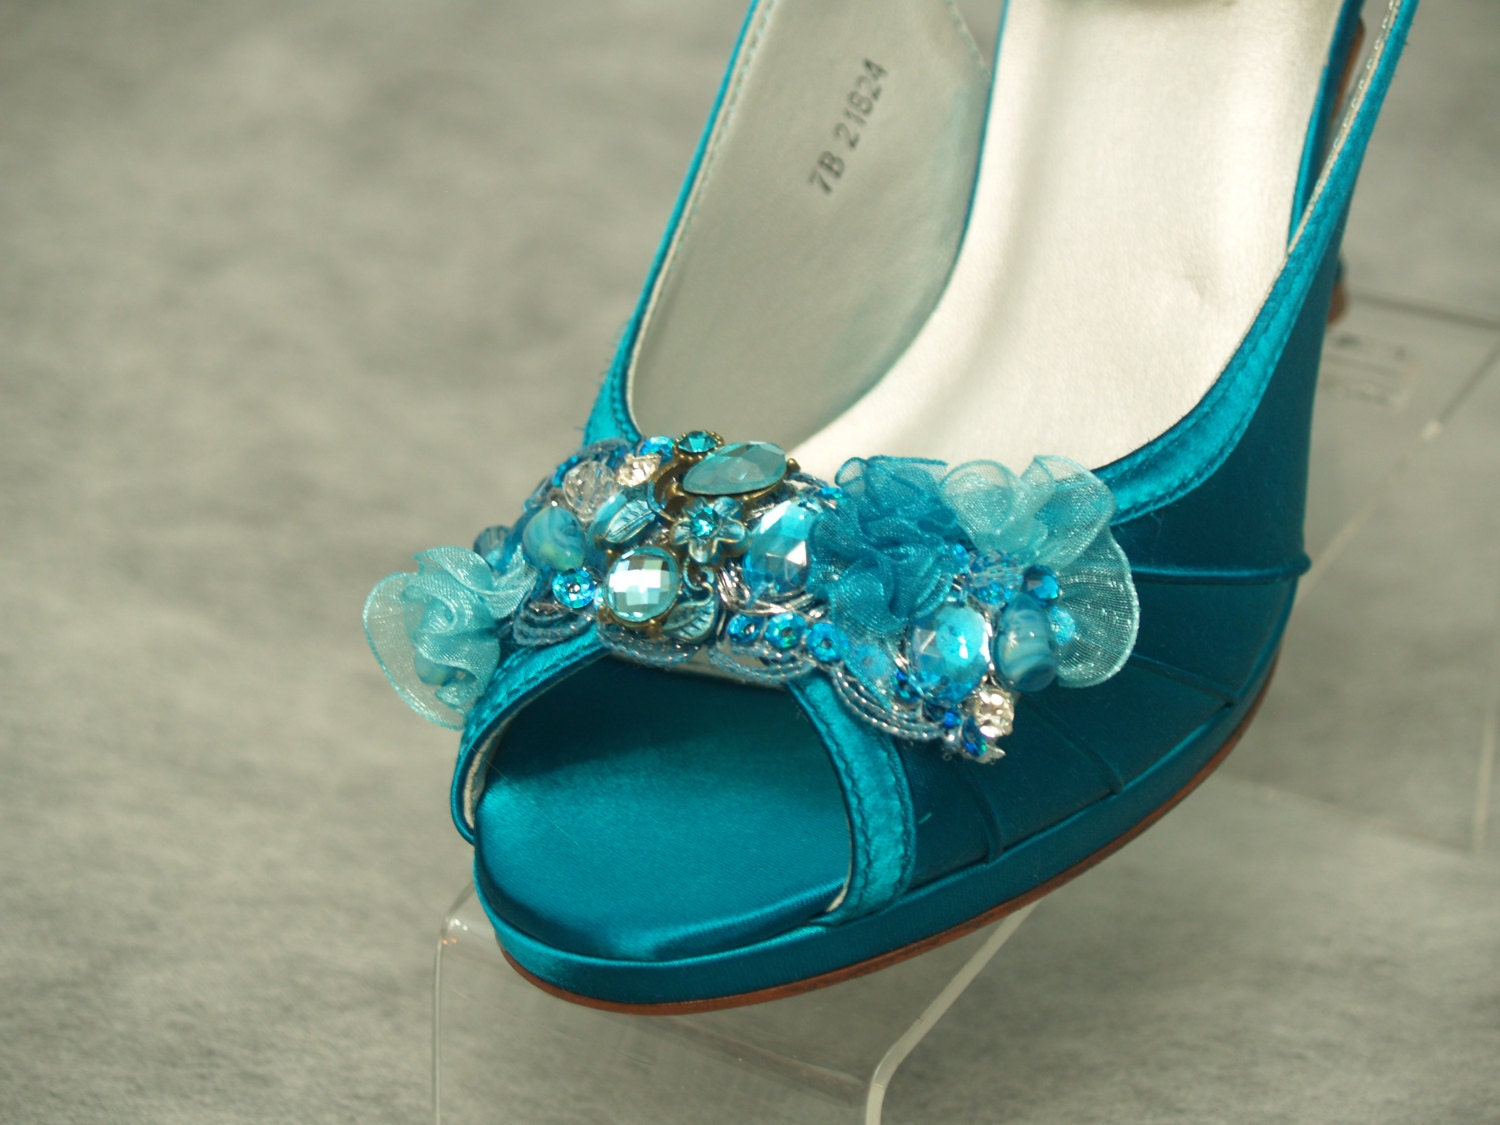 Teal Wedding Shoes 023 - Teal Wedding Shoes